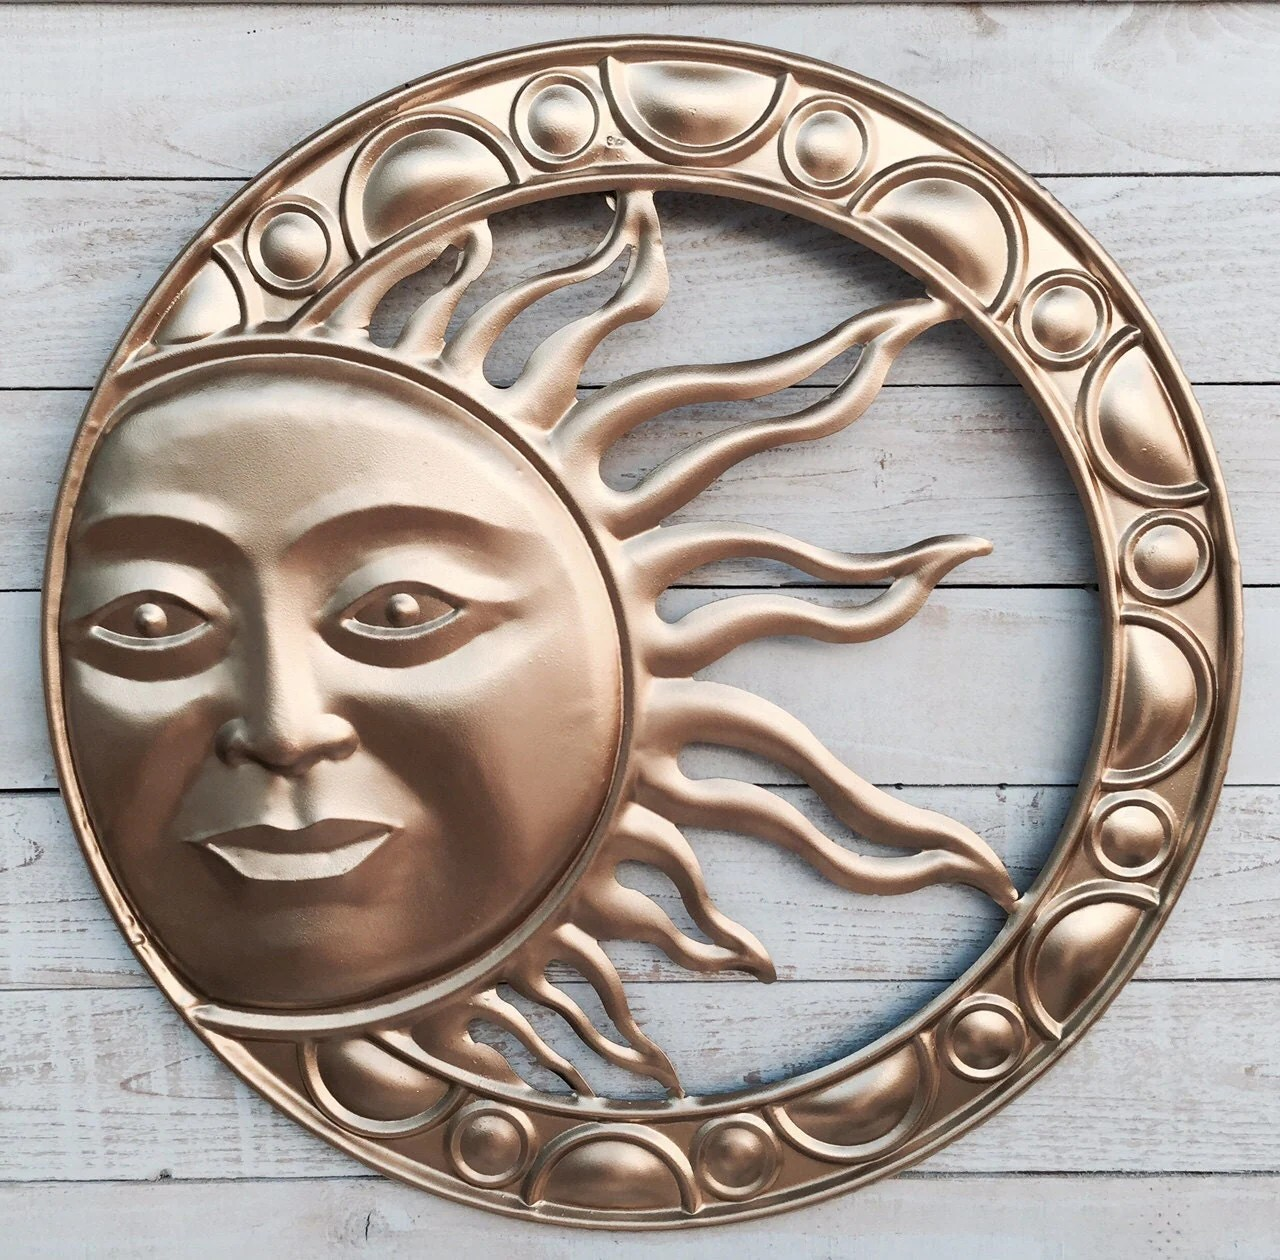 Rustic Outdoor Metal Wall Art Sun Garden Rustic Metal Wall Decor Wall Hanging Gold By